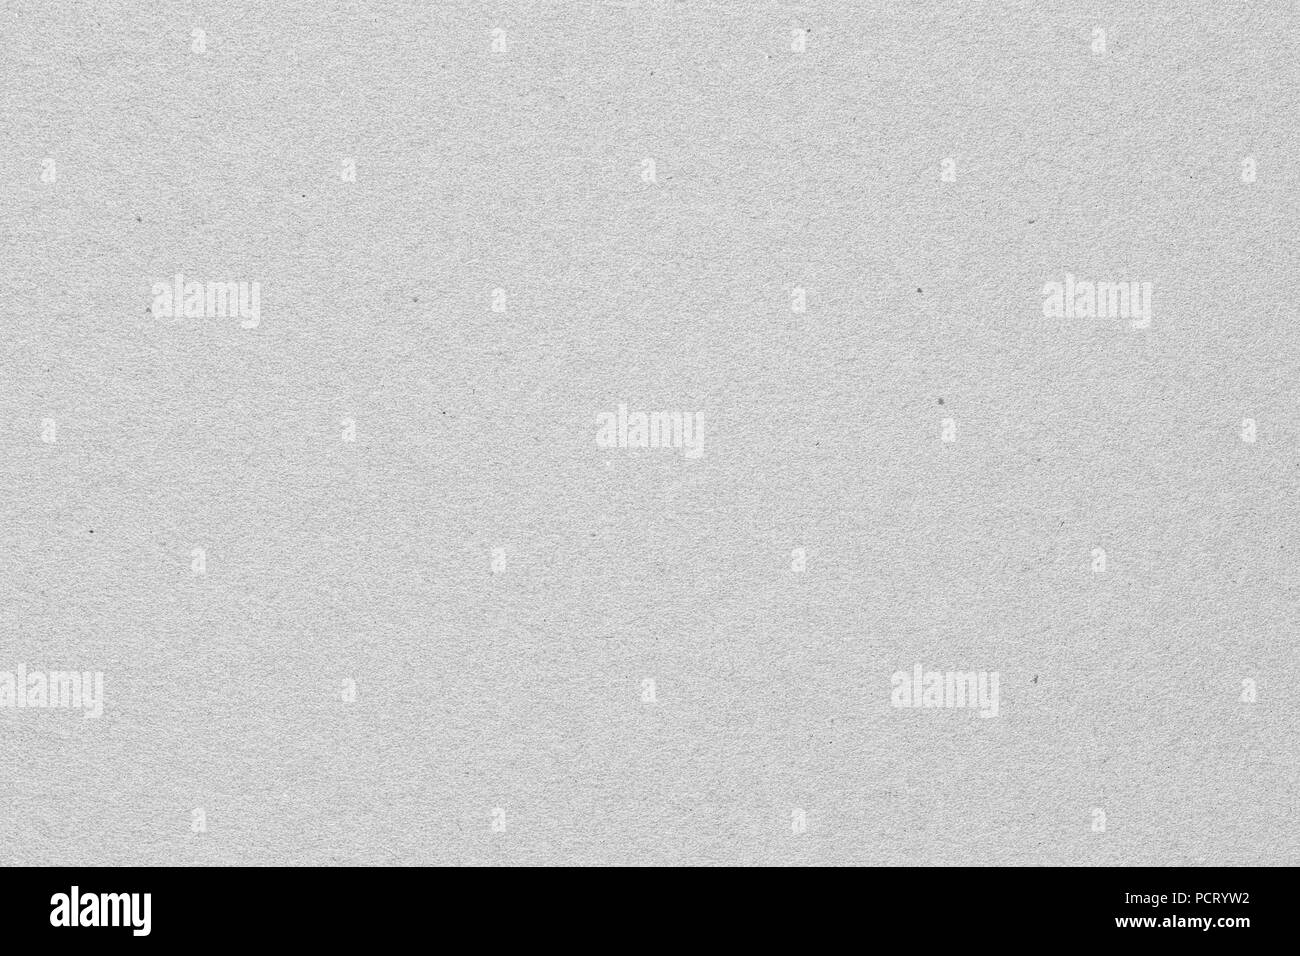 Gray paper texture High resolution background for design backdrop or overlay design - Stock Image